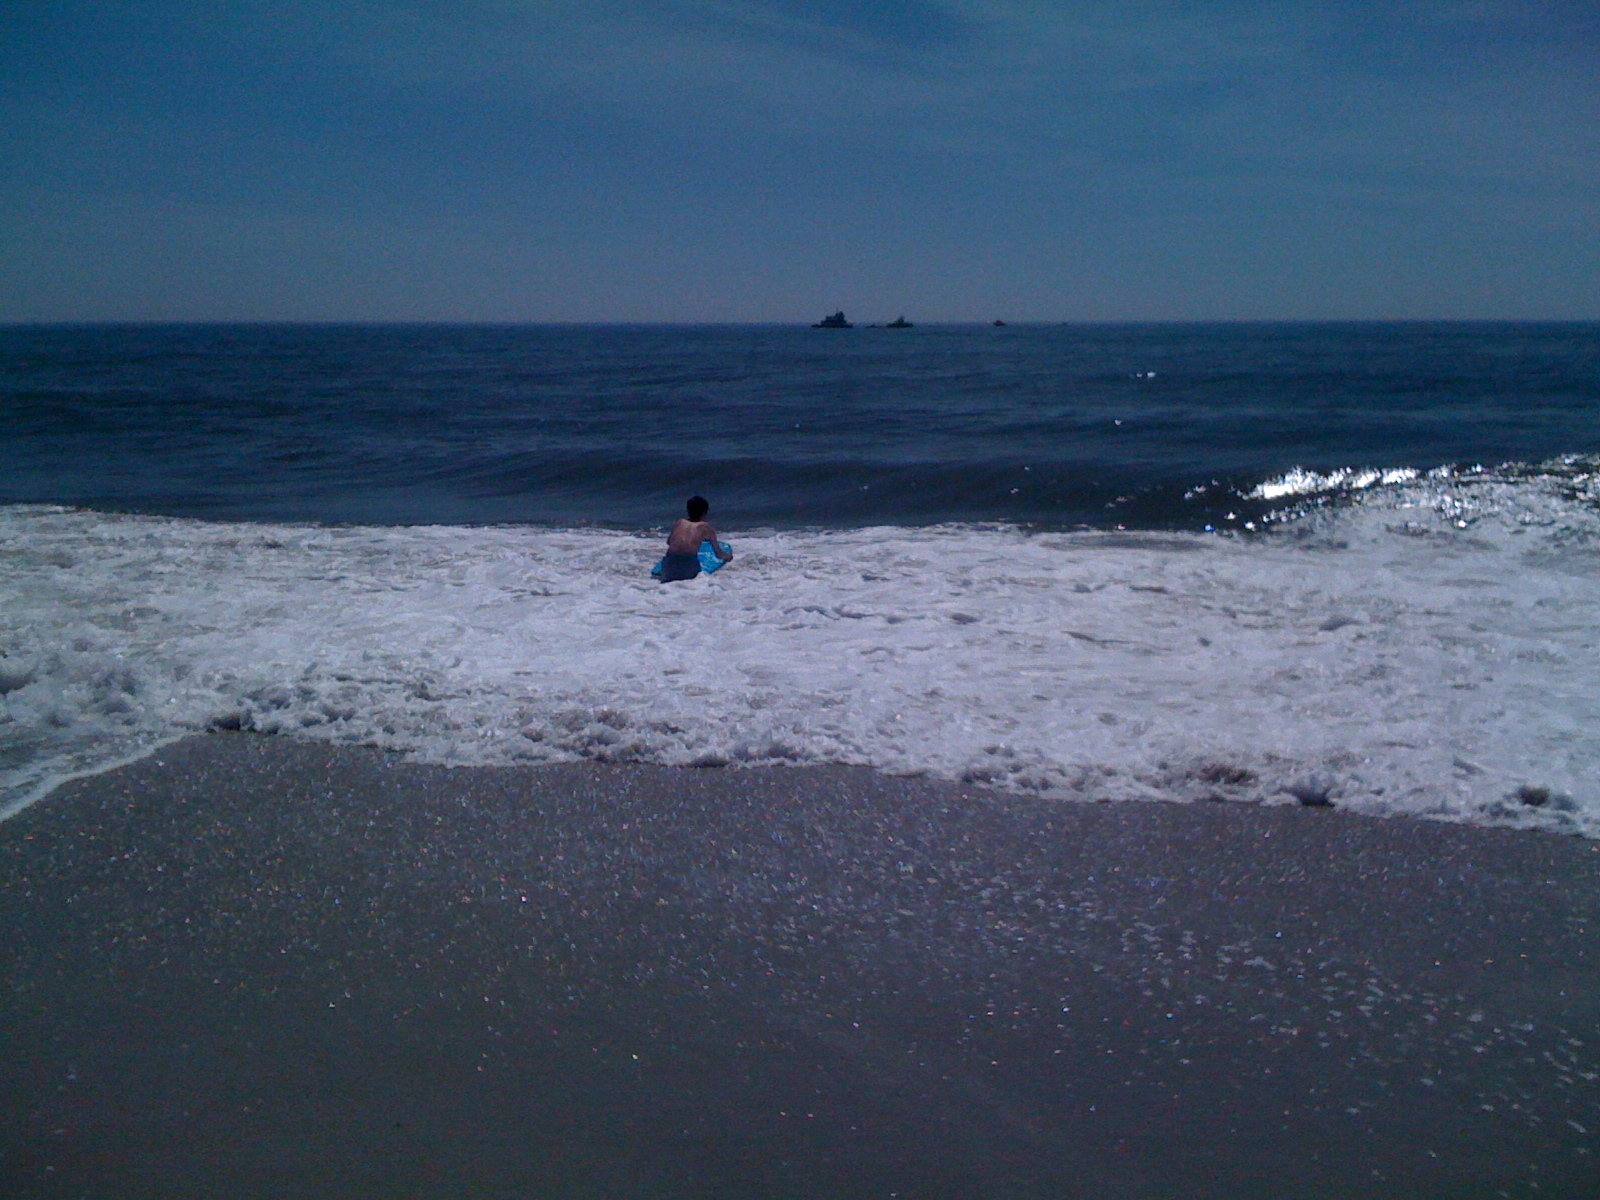 Out to the ocean, boy and board